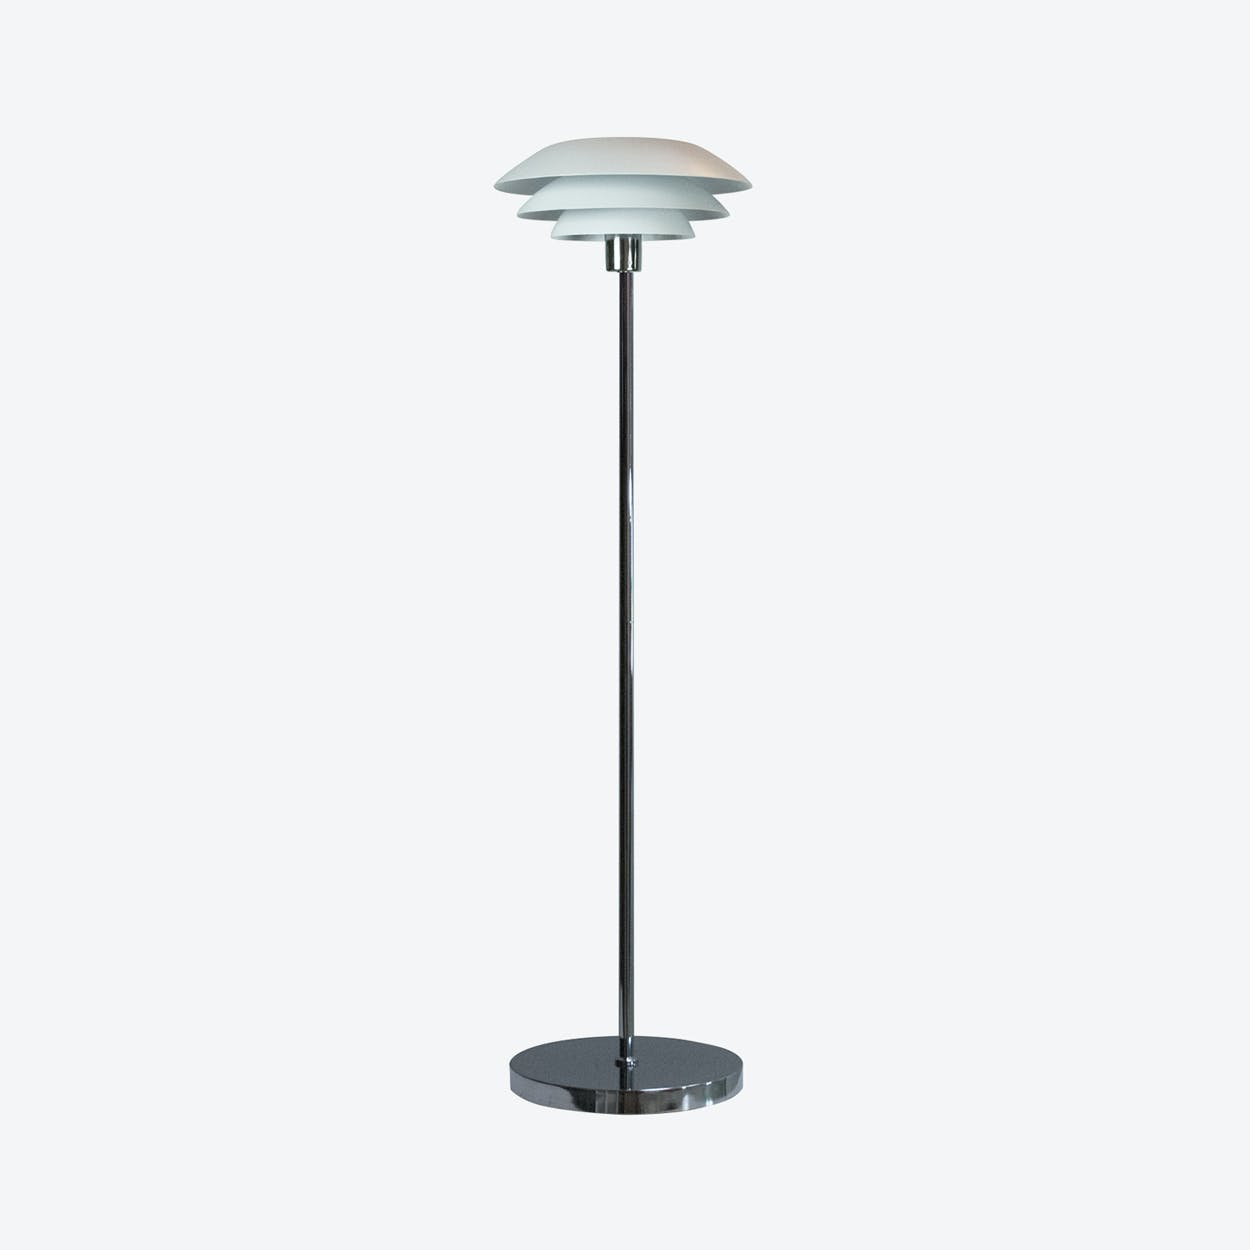 DL31 Floor Lamp in Matte White